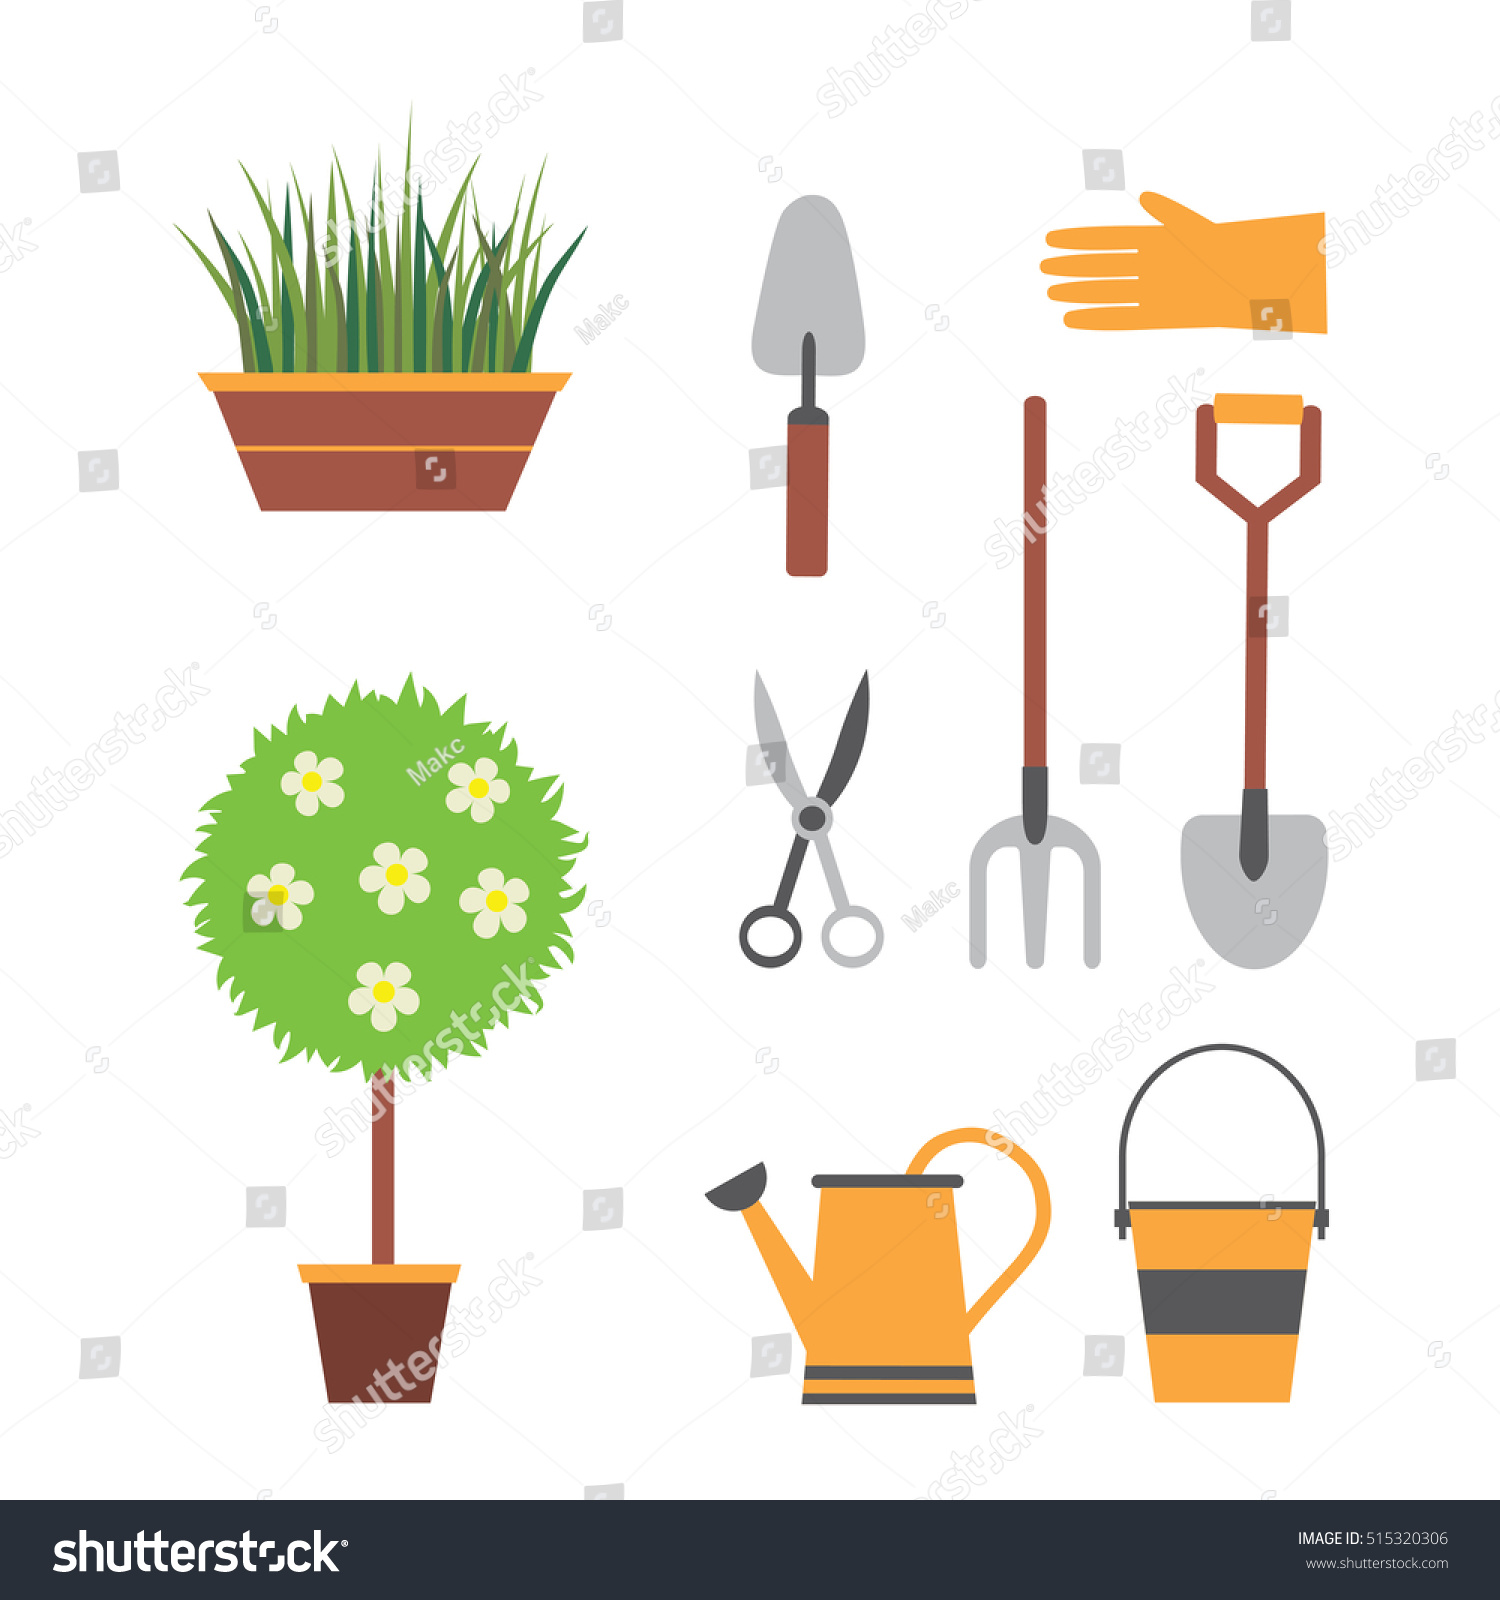 Garden Tools, Gardening, Set For Garden With Plants, Shovel, Watering Can,